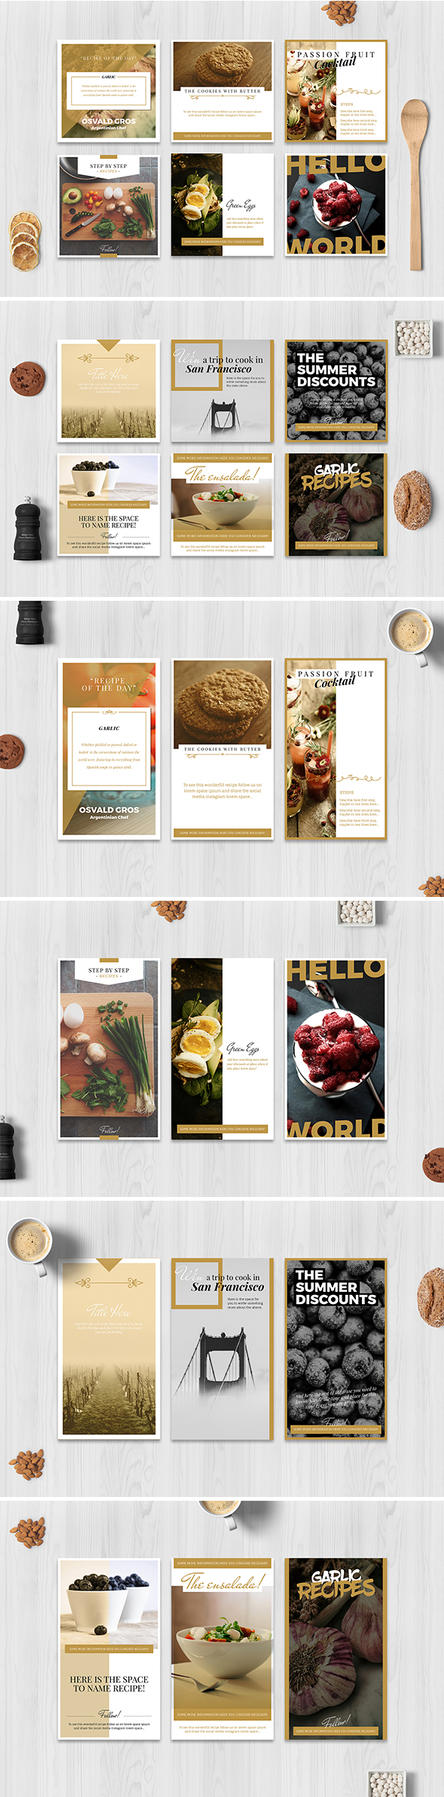 Food Social Media Pack by luuqas